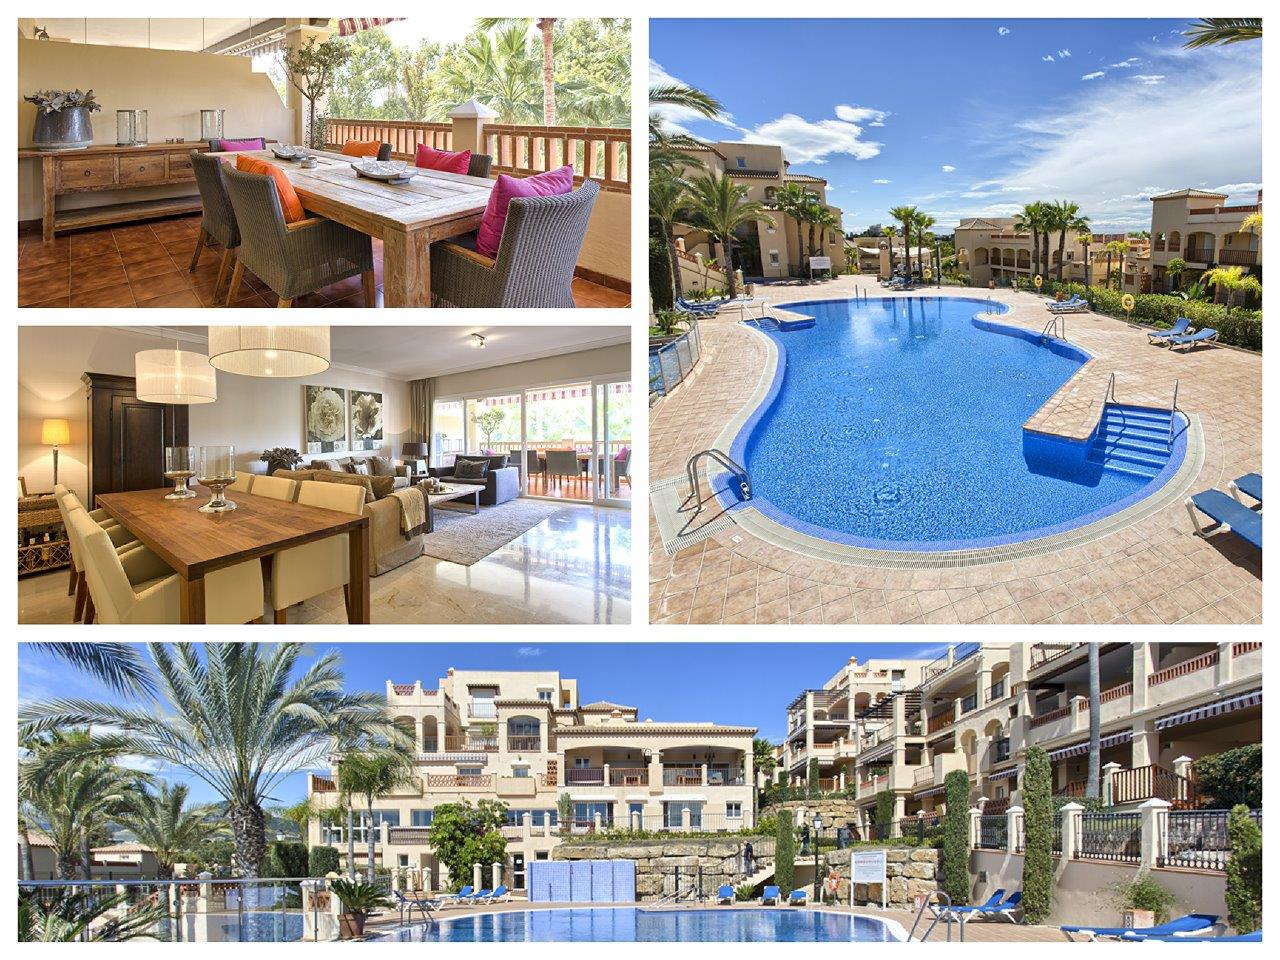 Appartement in Marques de Atalaya te koop (Estepona/Benahavis)